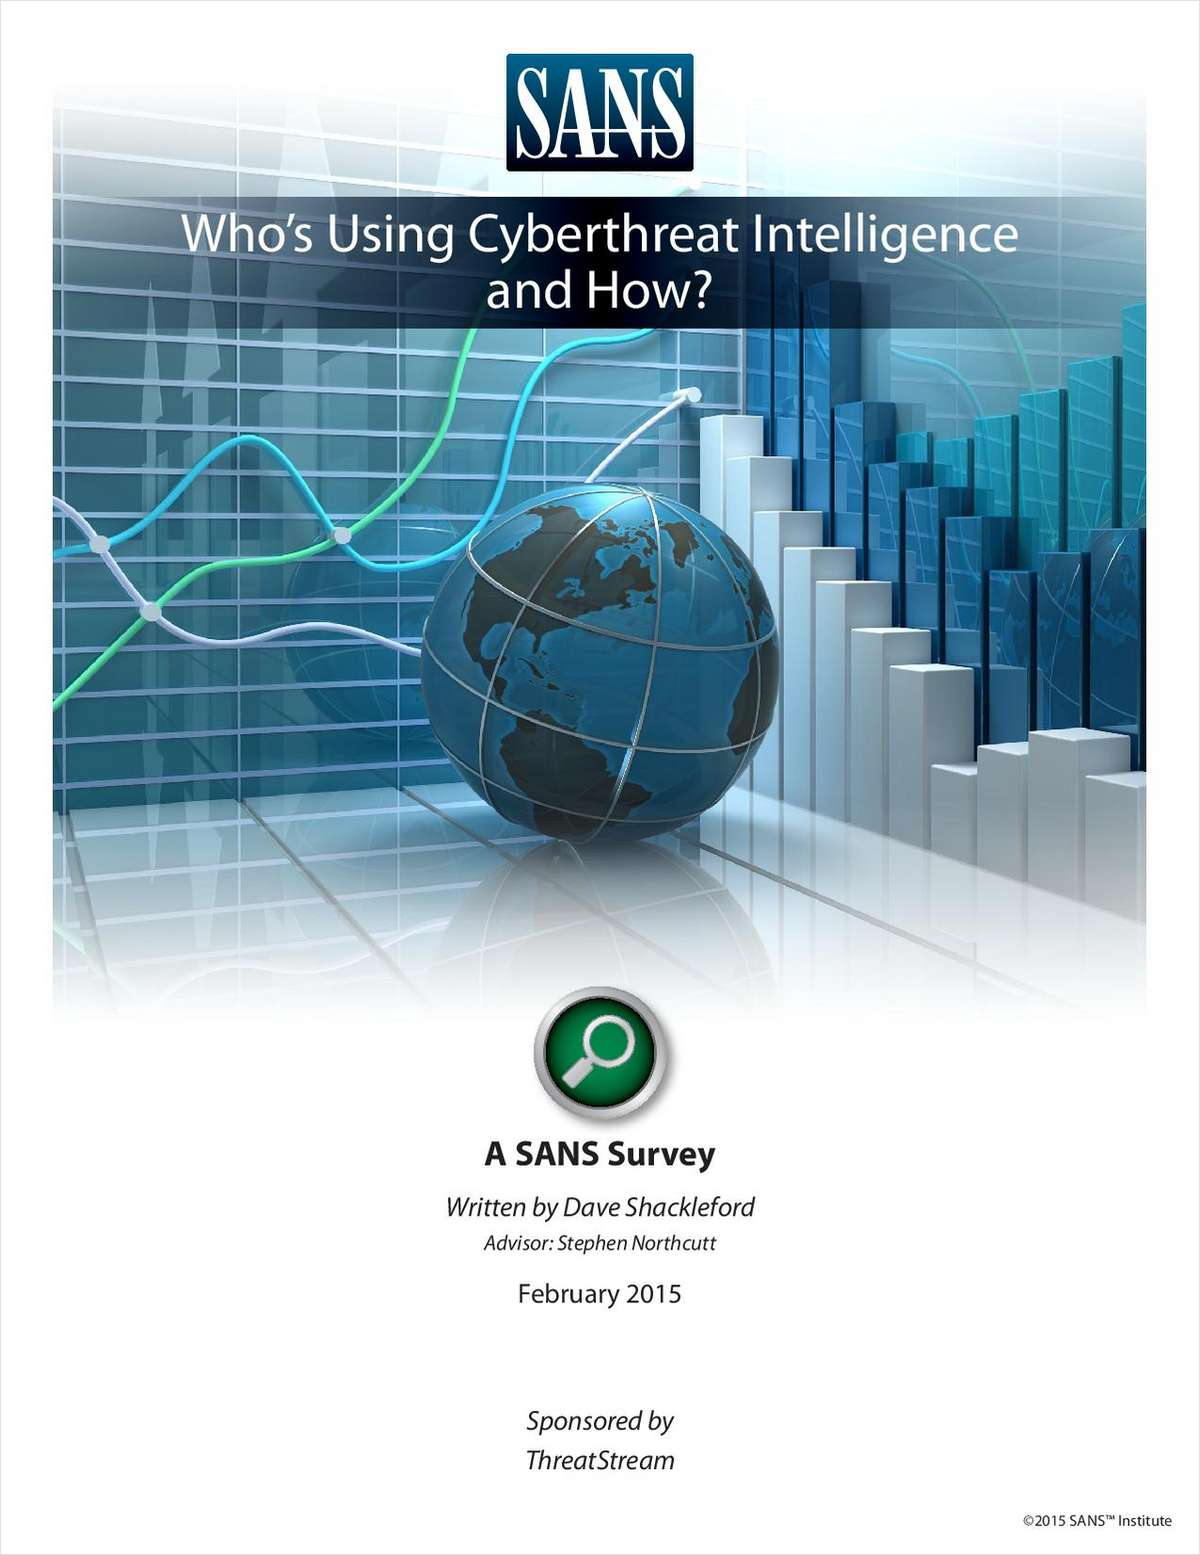 Who's Using Cyber Threat Intelligence